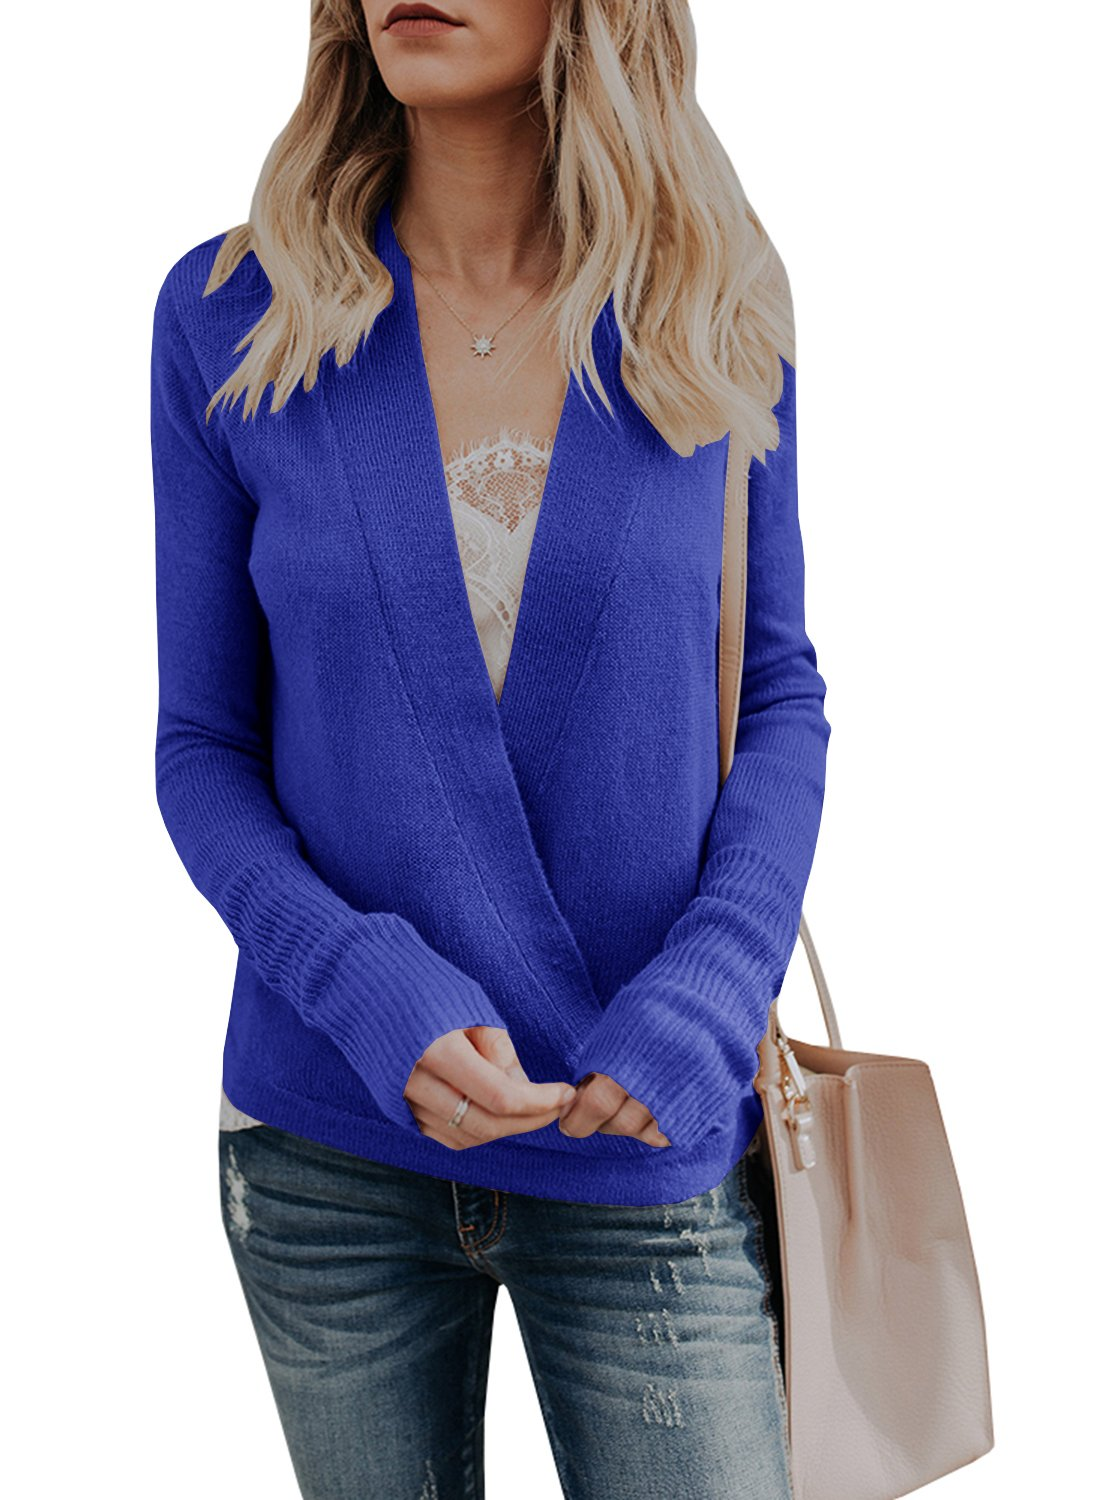 Nulibenna Womens Wrap Deep V Neck Sweater Knitted Long Sleeve Pullover Fall Tops